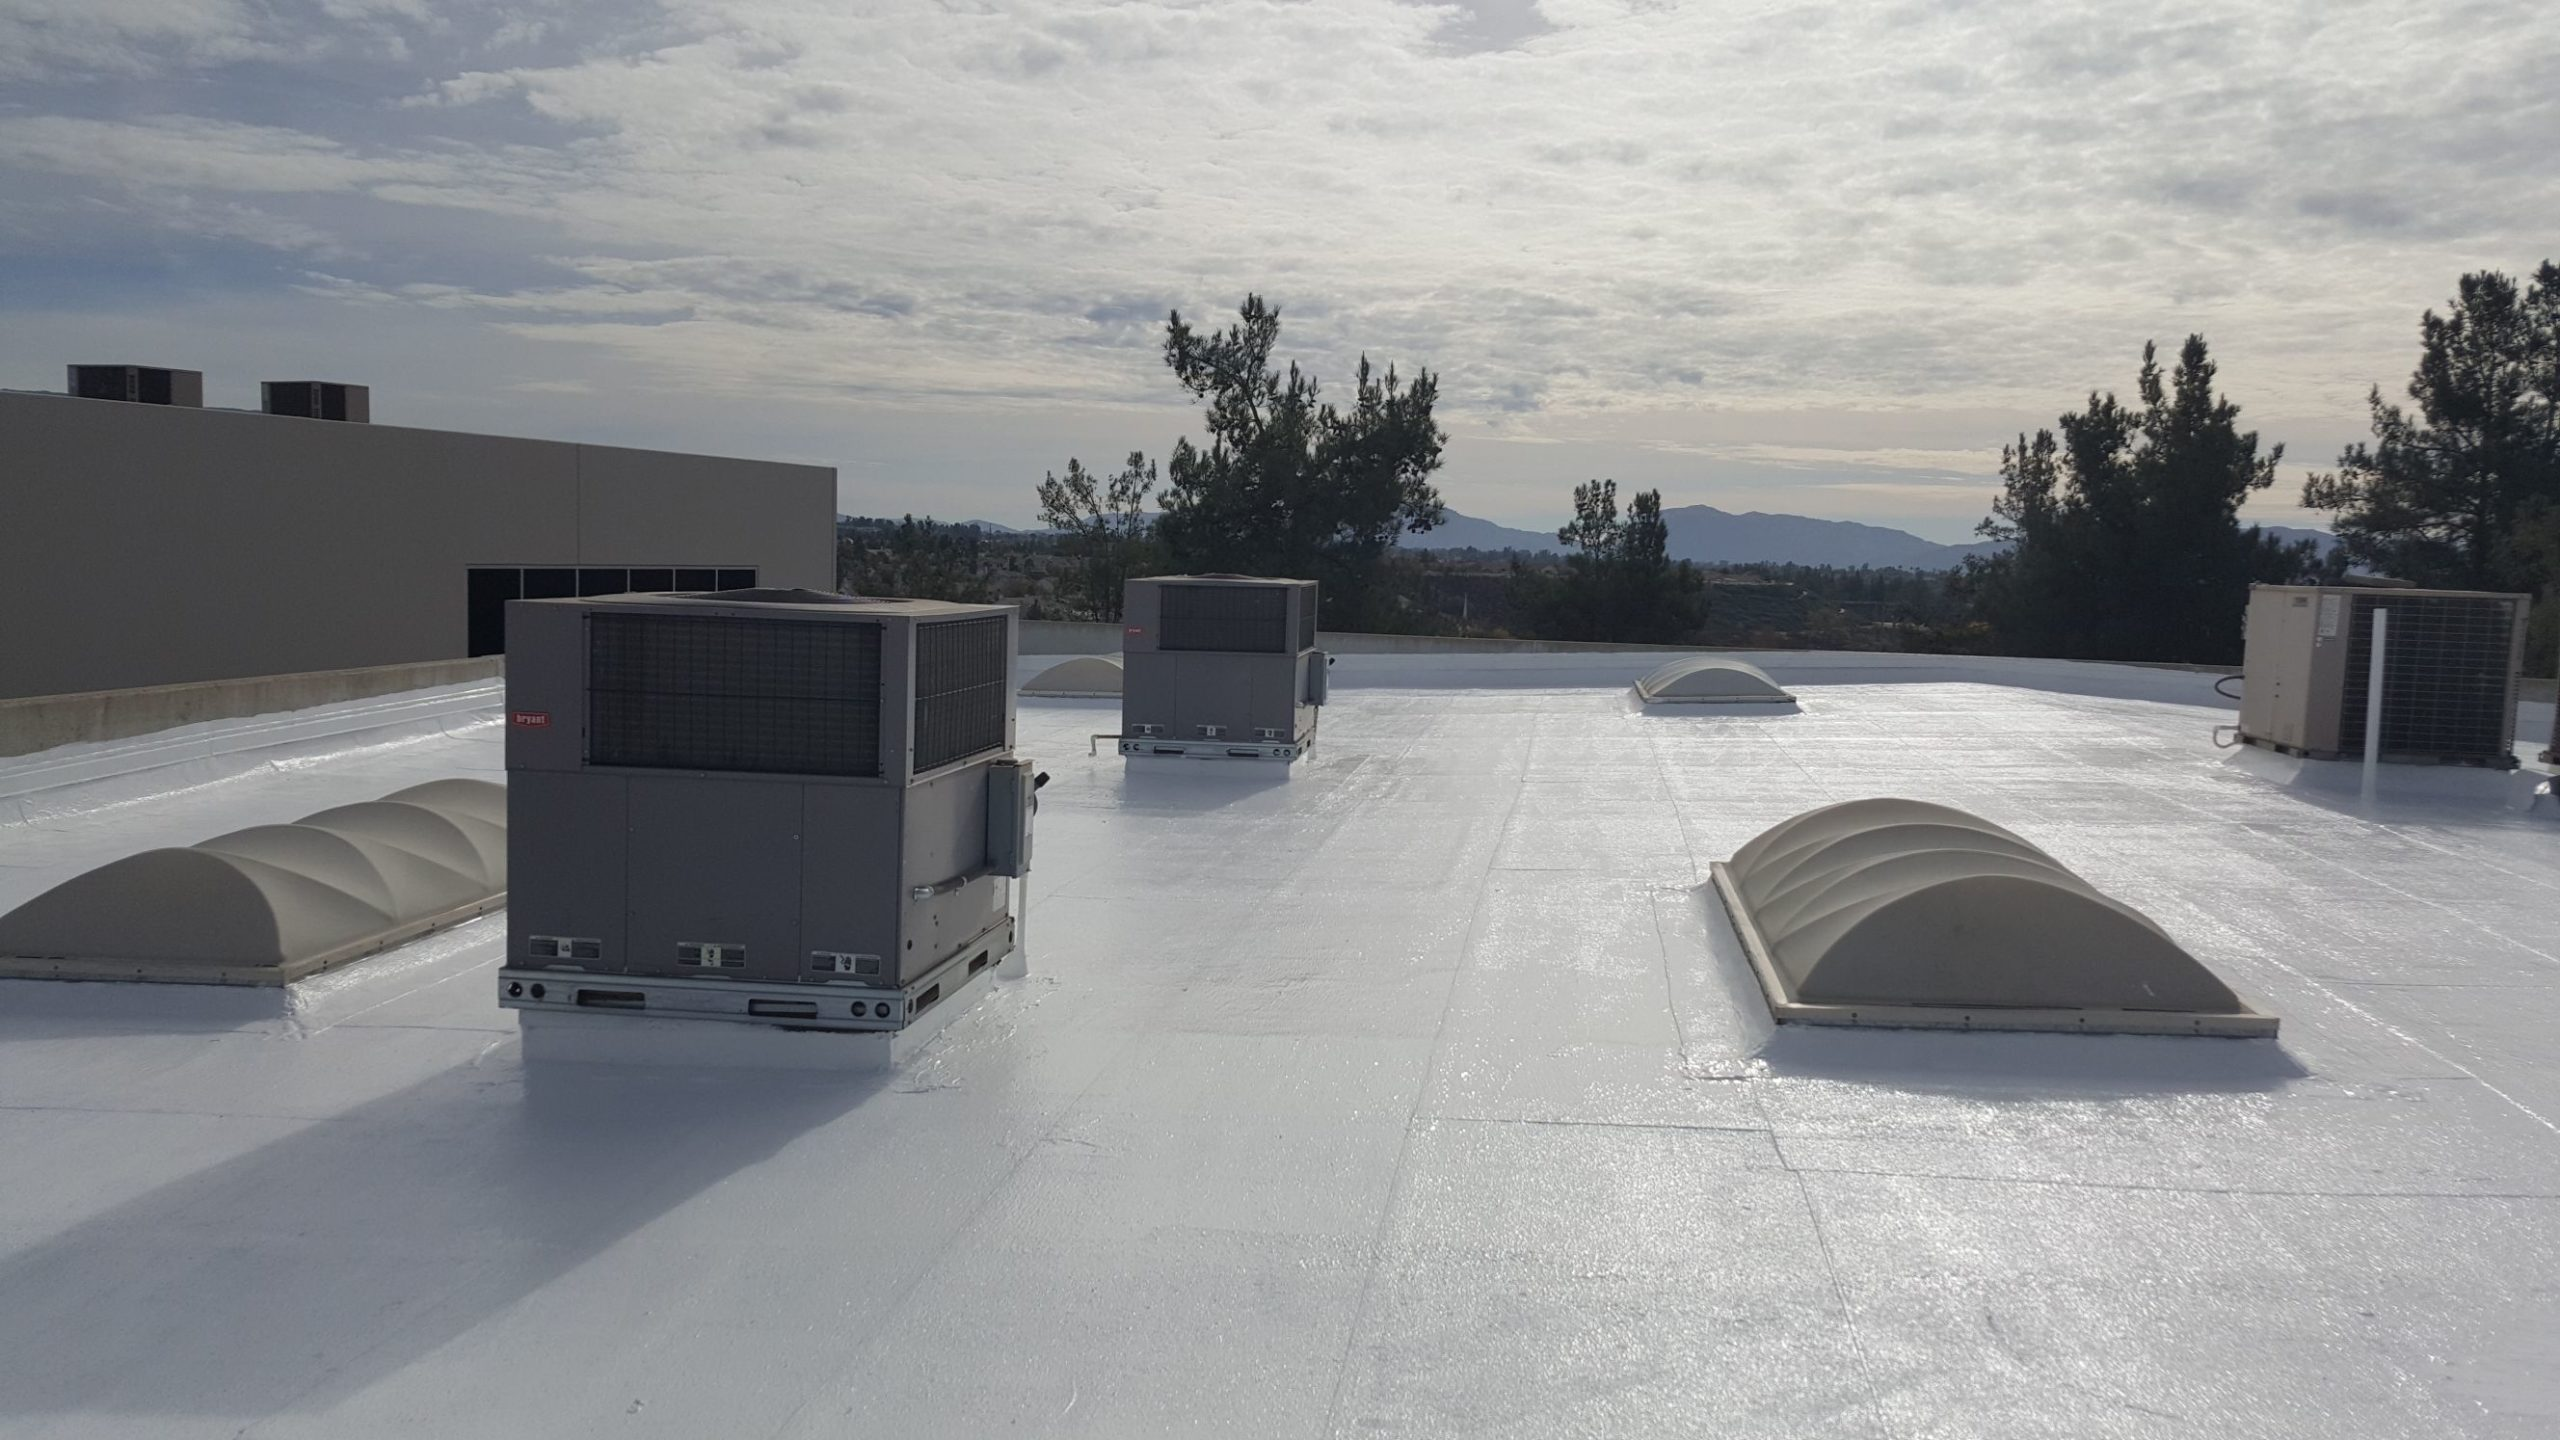 Commercial white roofs scaled